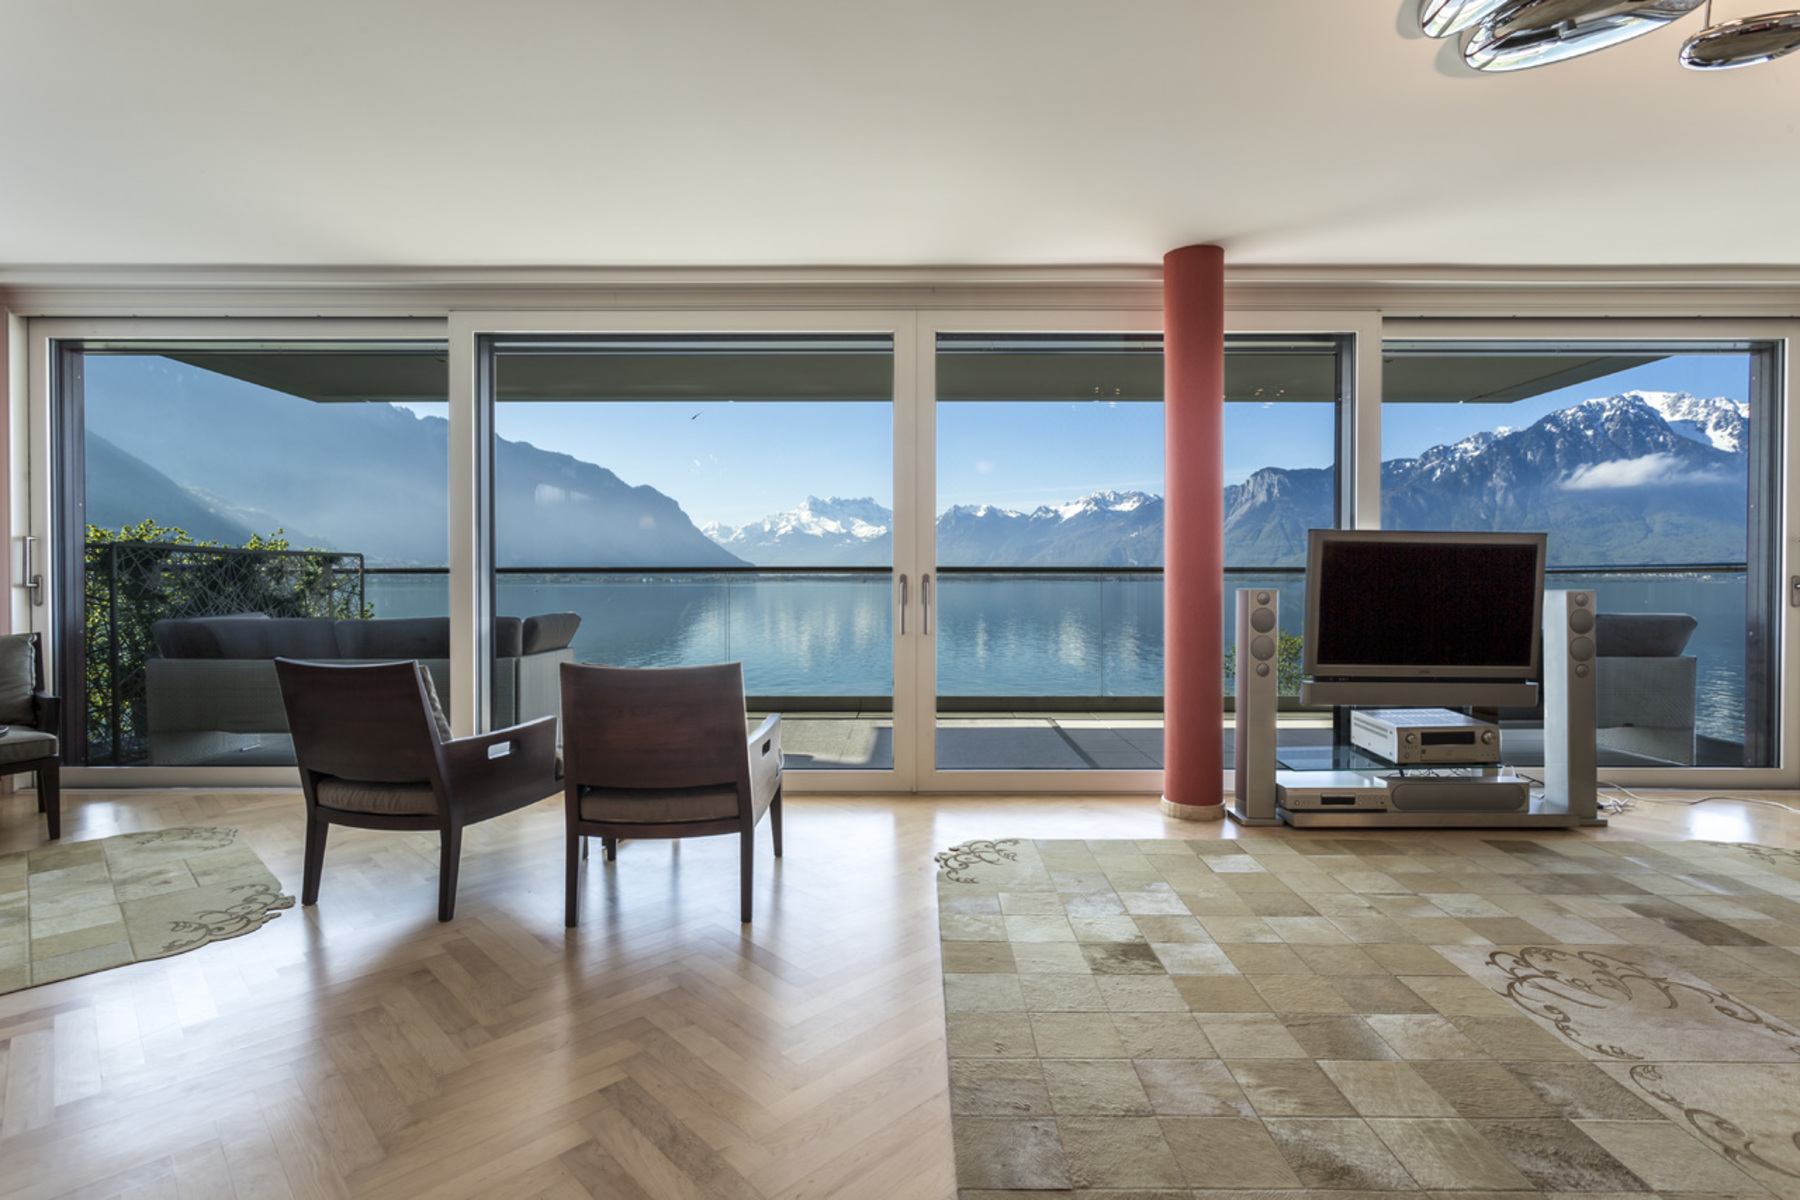 sales property at Résidence Villa les Bains 4.5 room furnished penthouse On the lakeshor